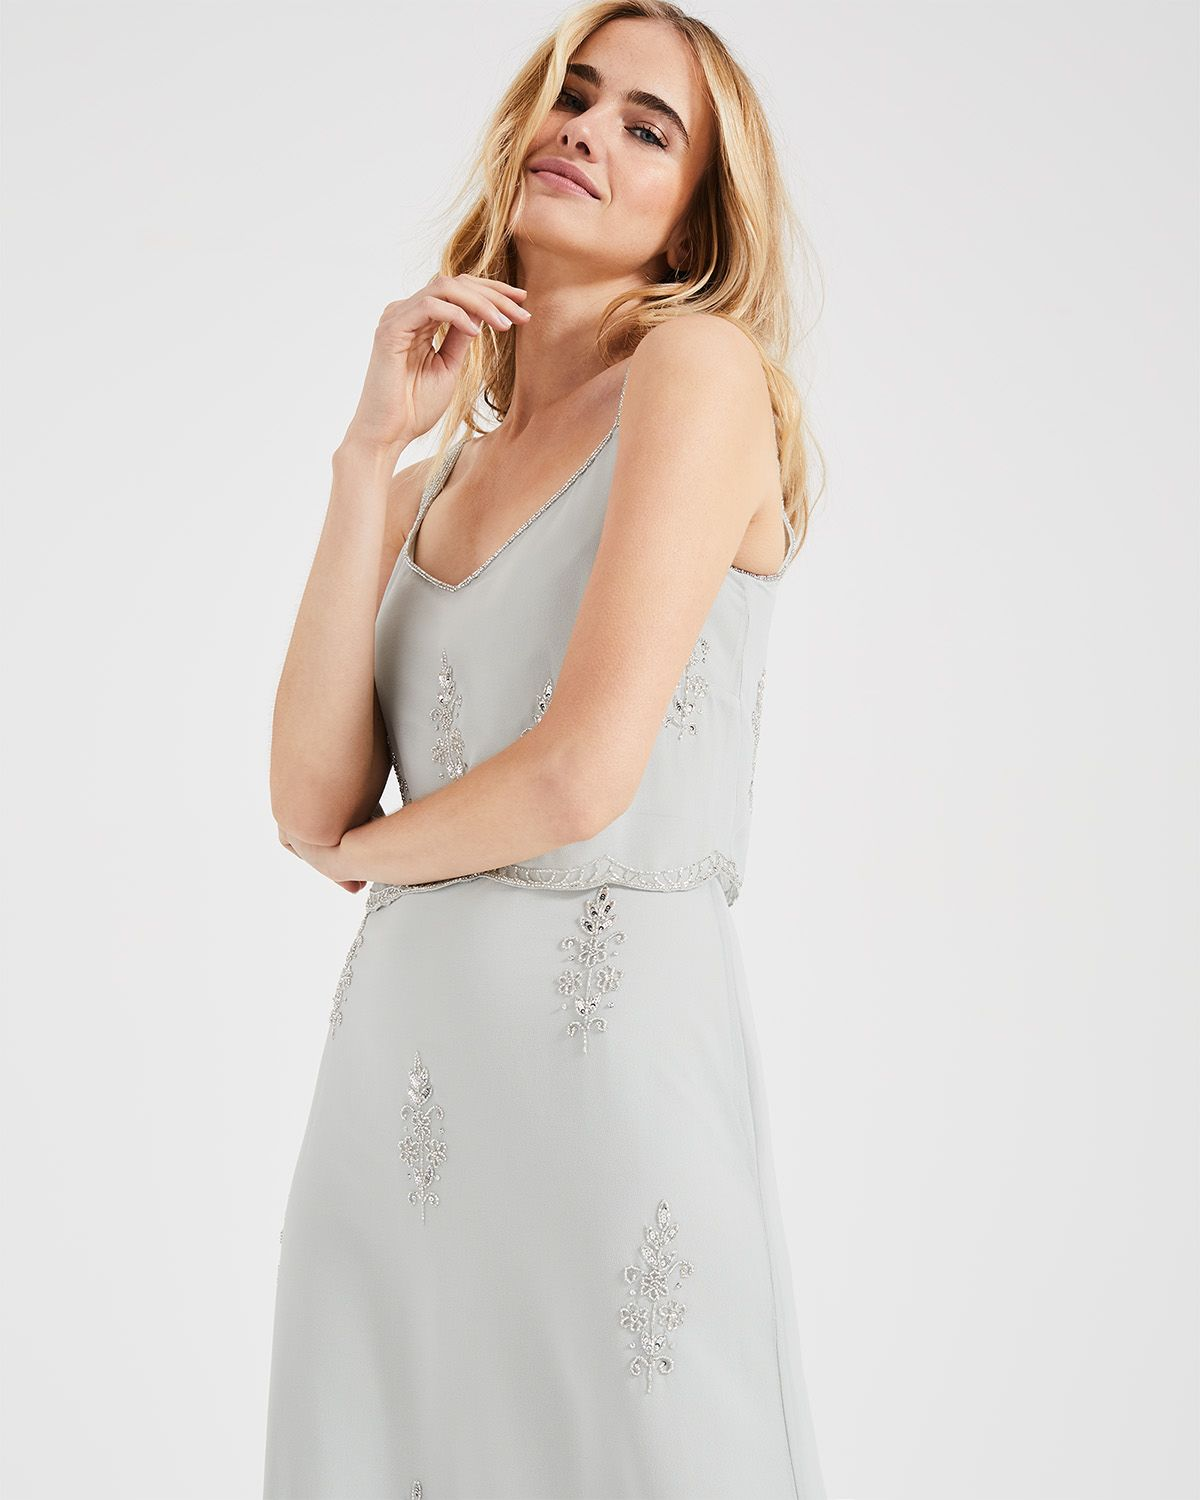 385ac1bdd09a1 A stunning vintage-inspired bridesmaid dress created with delicate beading.  Designed in a flattering